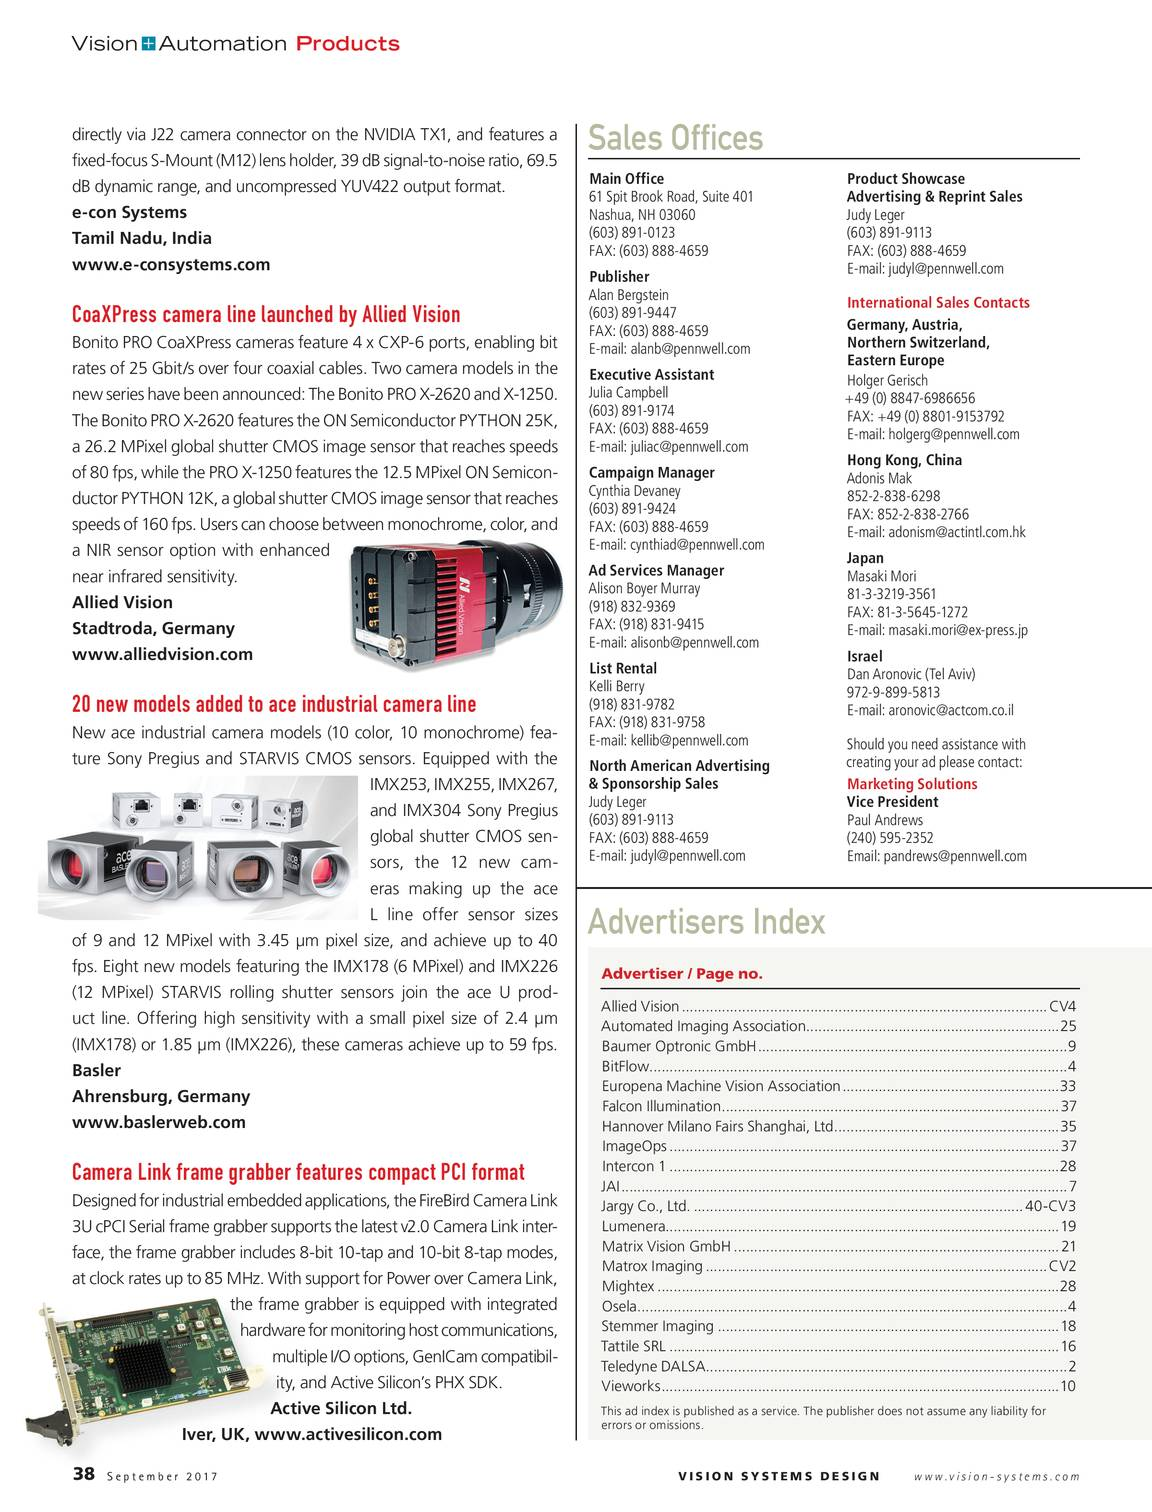 Vision Systems - September 2017 - page 37